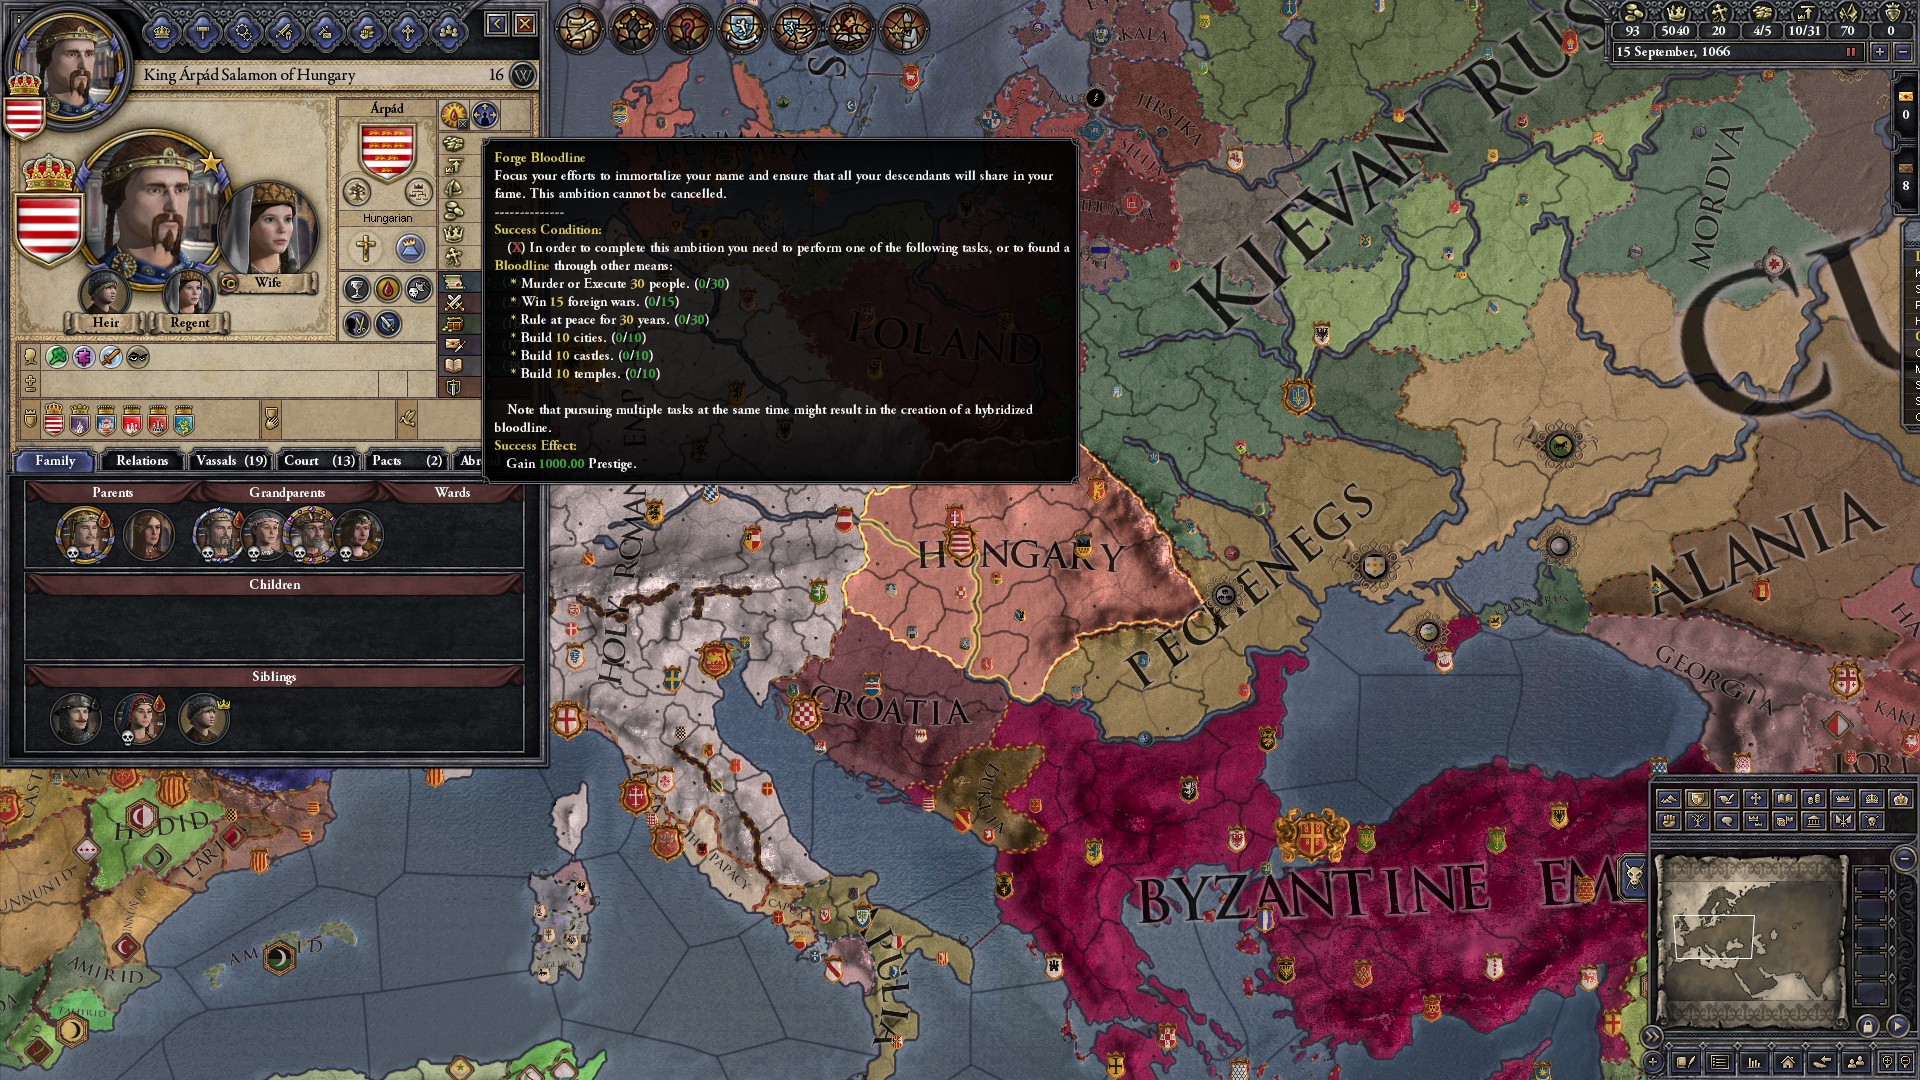 CK2 Dev Diary #104 - Forging a Bloodline | Paradox Interactive Forums